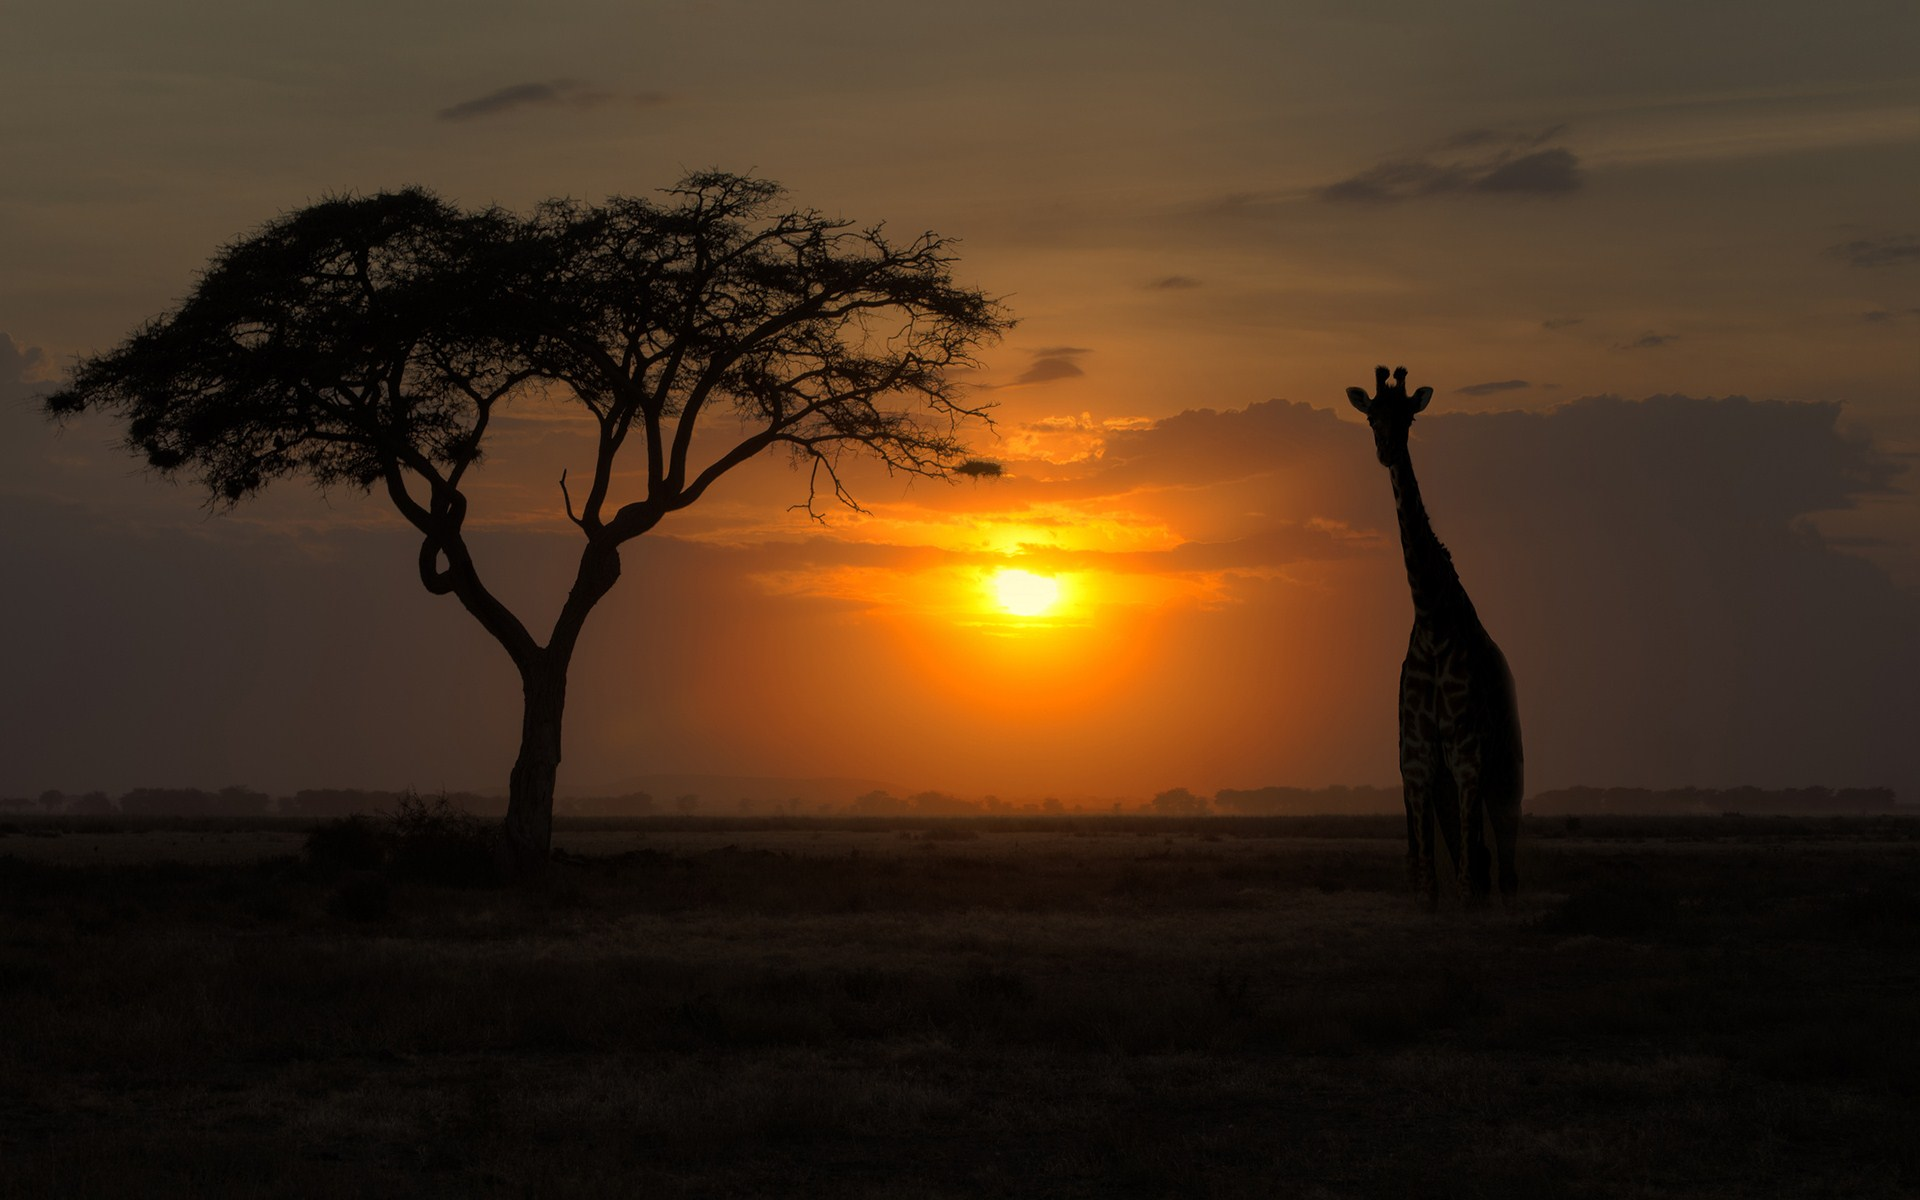 Sunset Giraffe Tree Photo